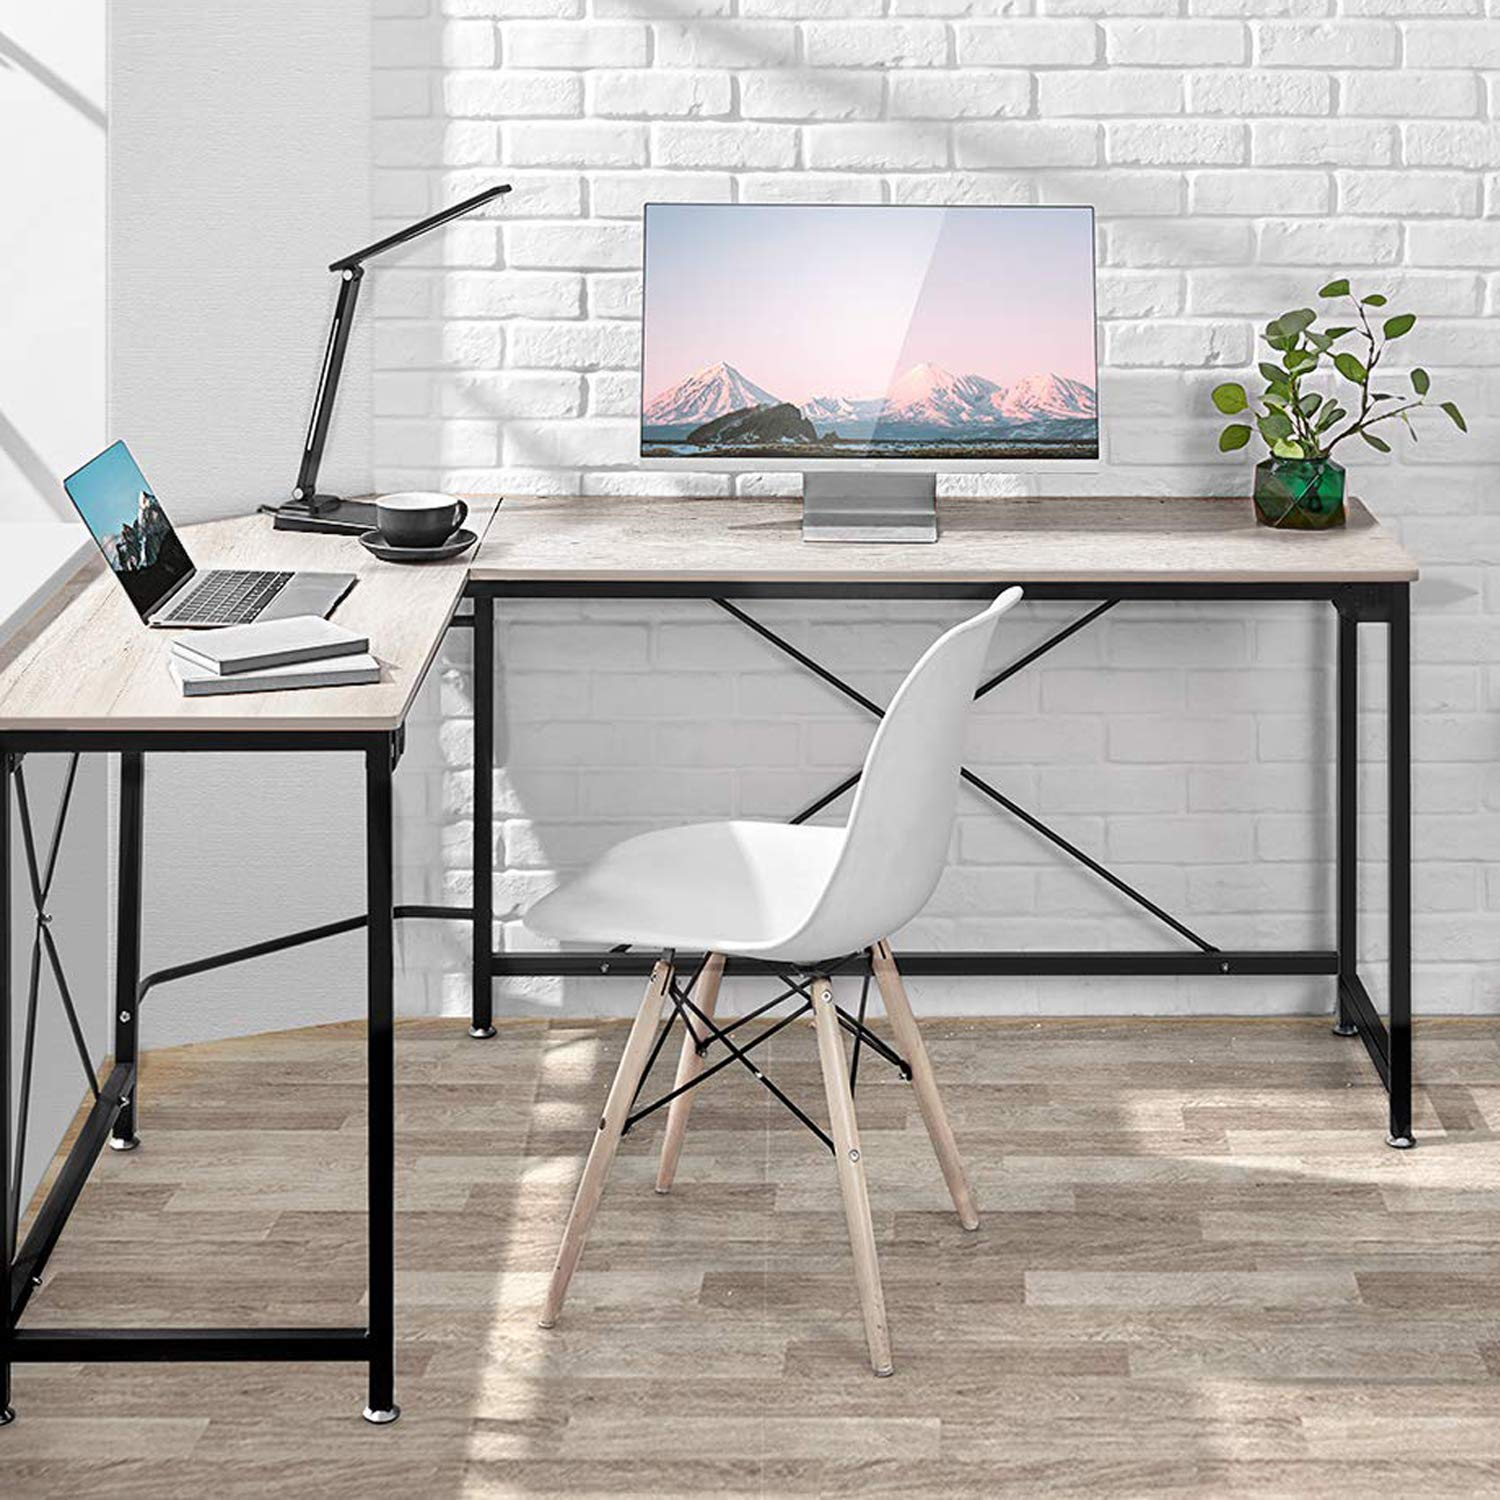 L-Shaped Desk Corner Computer Desk, PC Laptop Home Office Desk, Corner Table Workstation with Modern Style and MDF Board, Easy to Assemble Scratch Resistant Tabletop 64.9x49x29.7 inches, Wood Grain by kealive